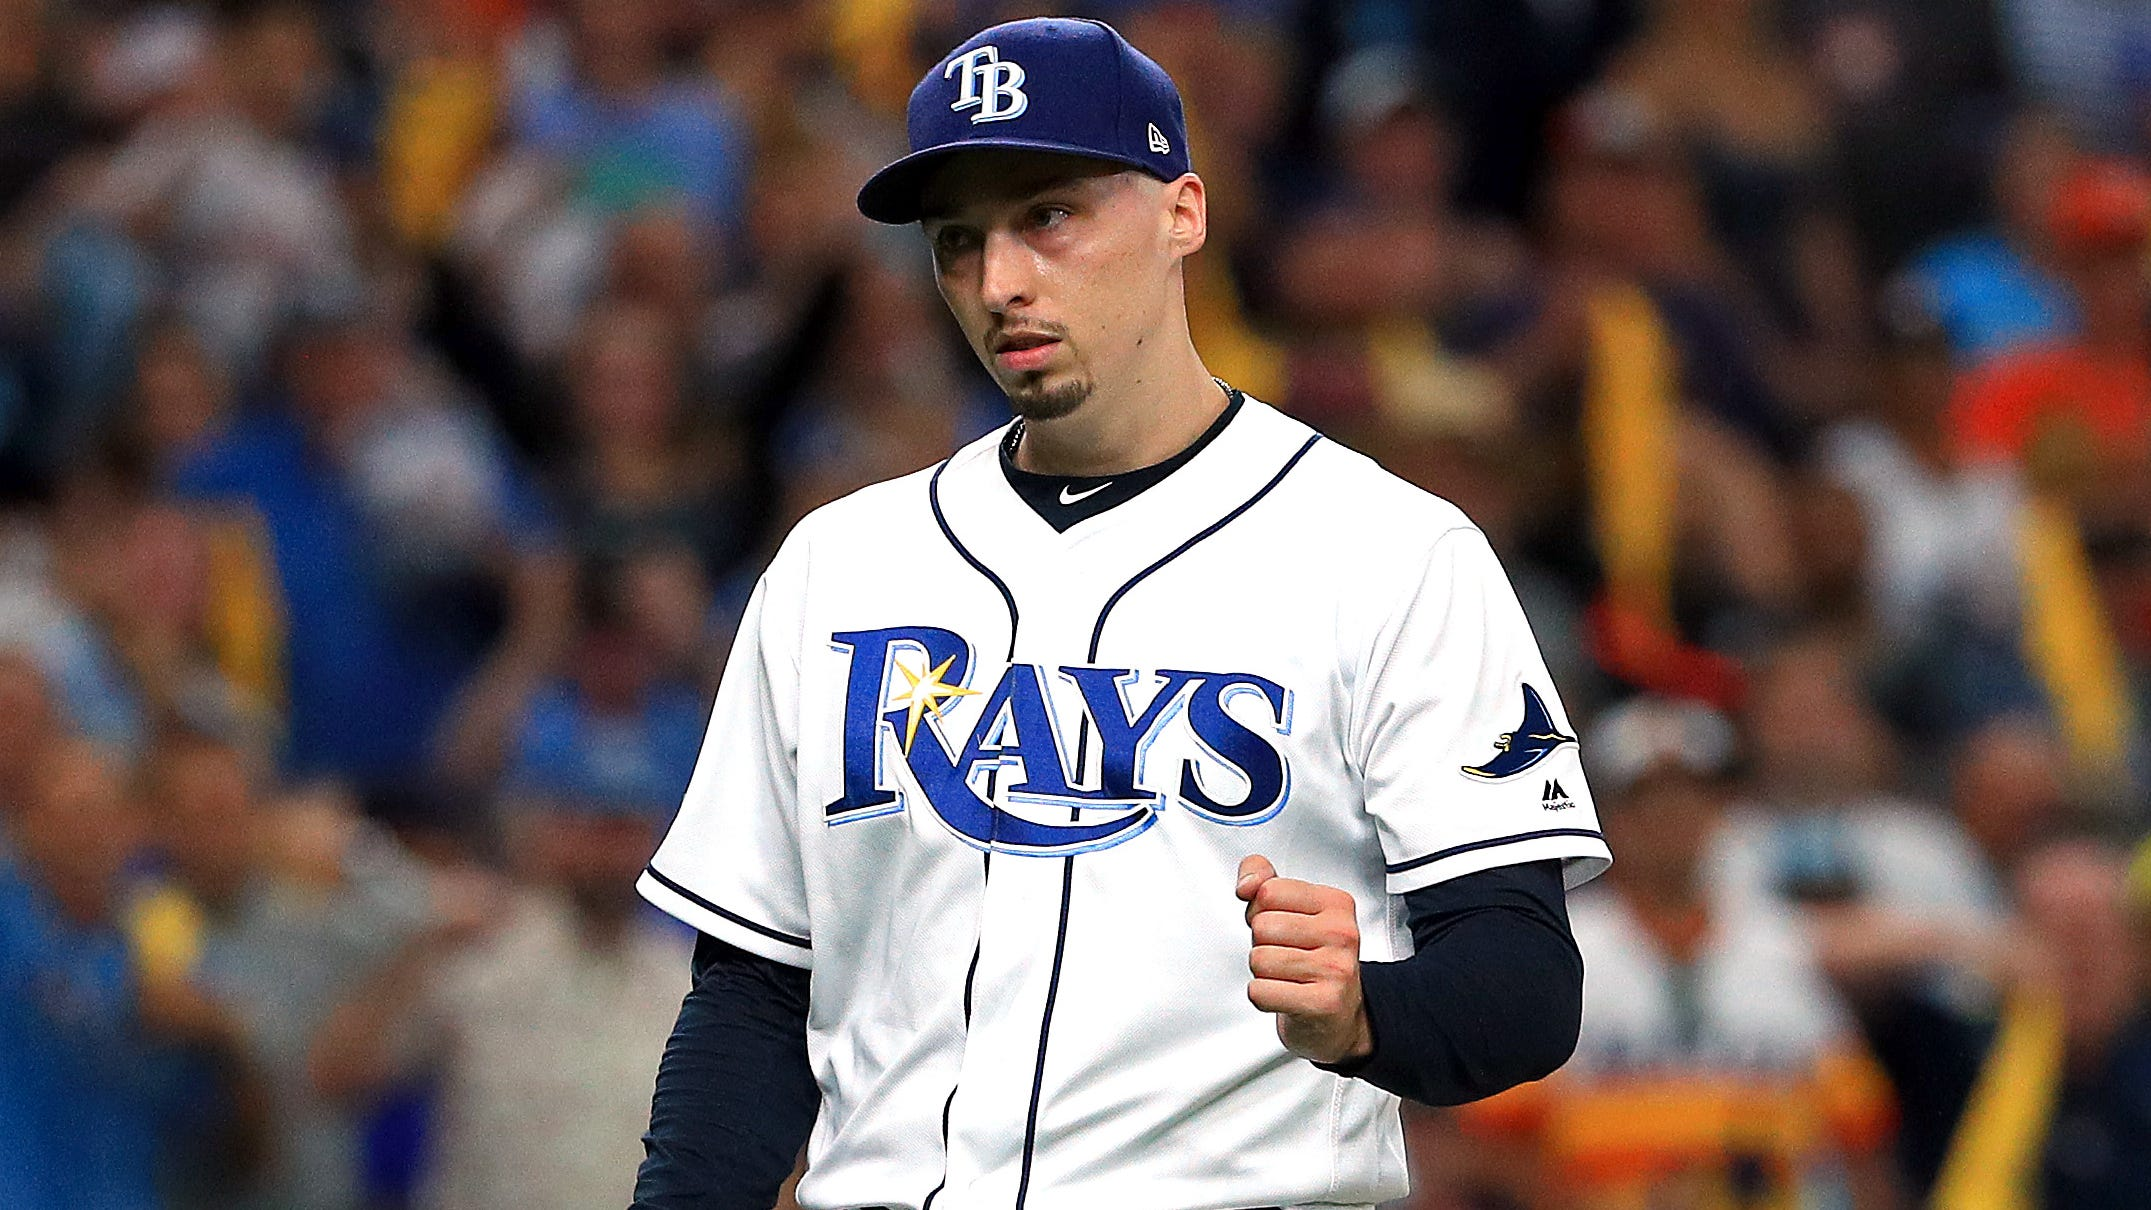 Blake Snell is on the market